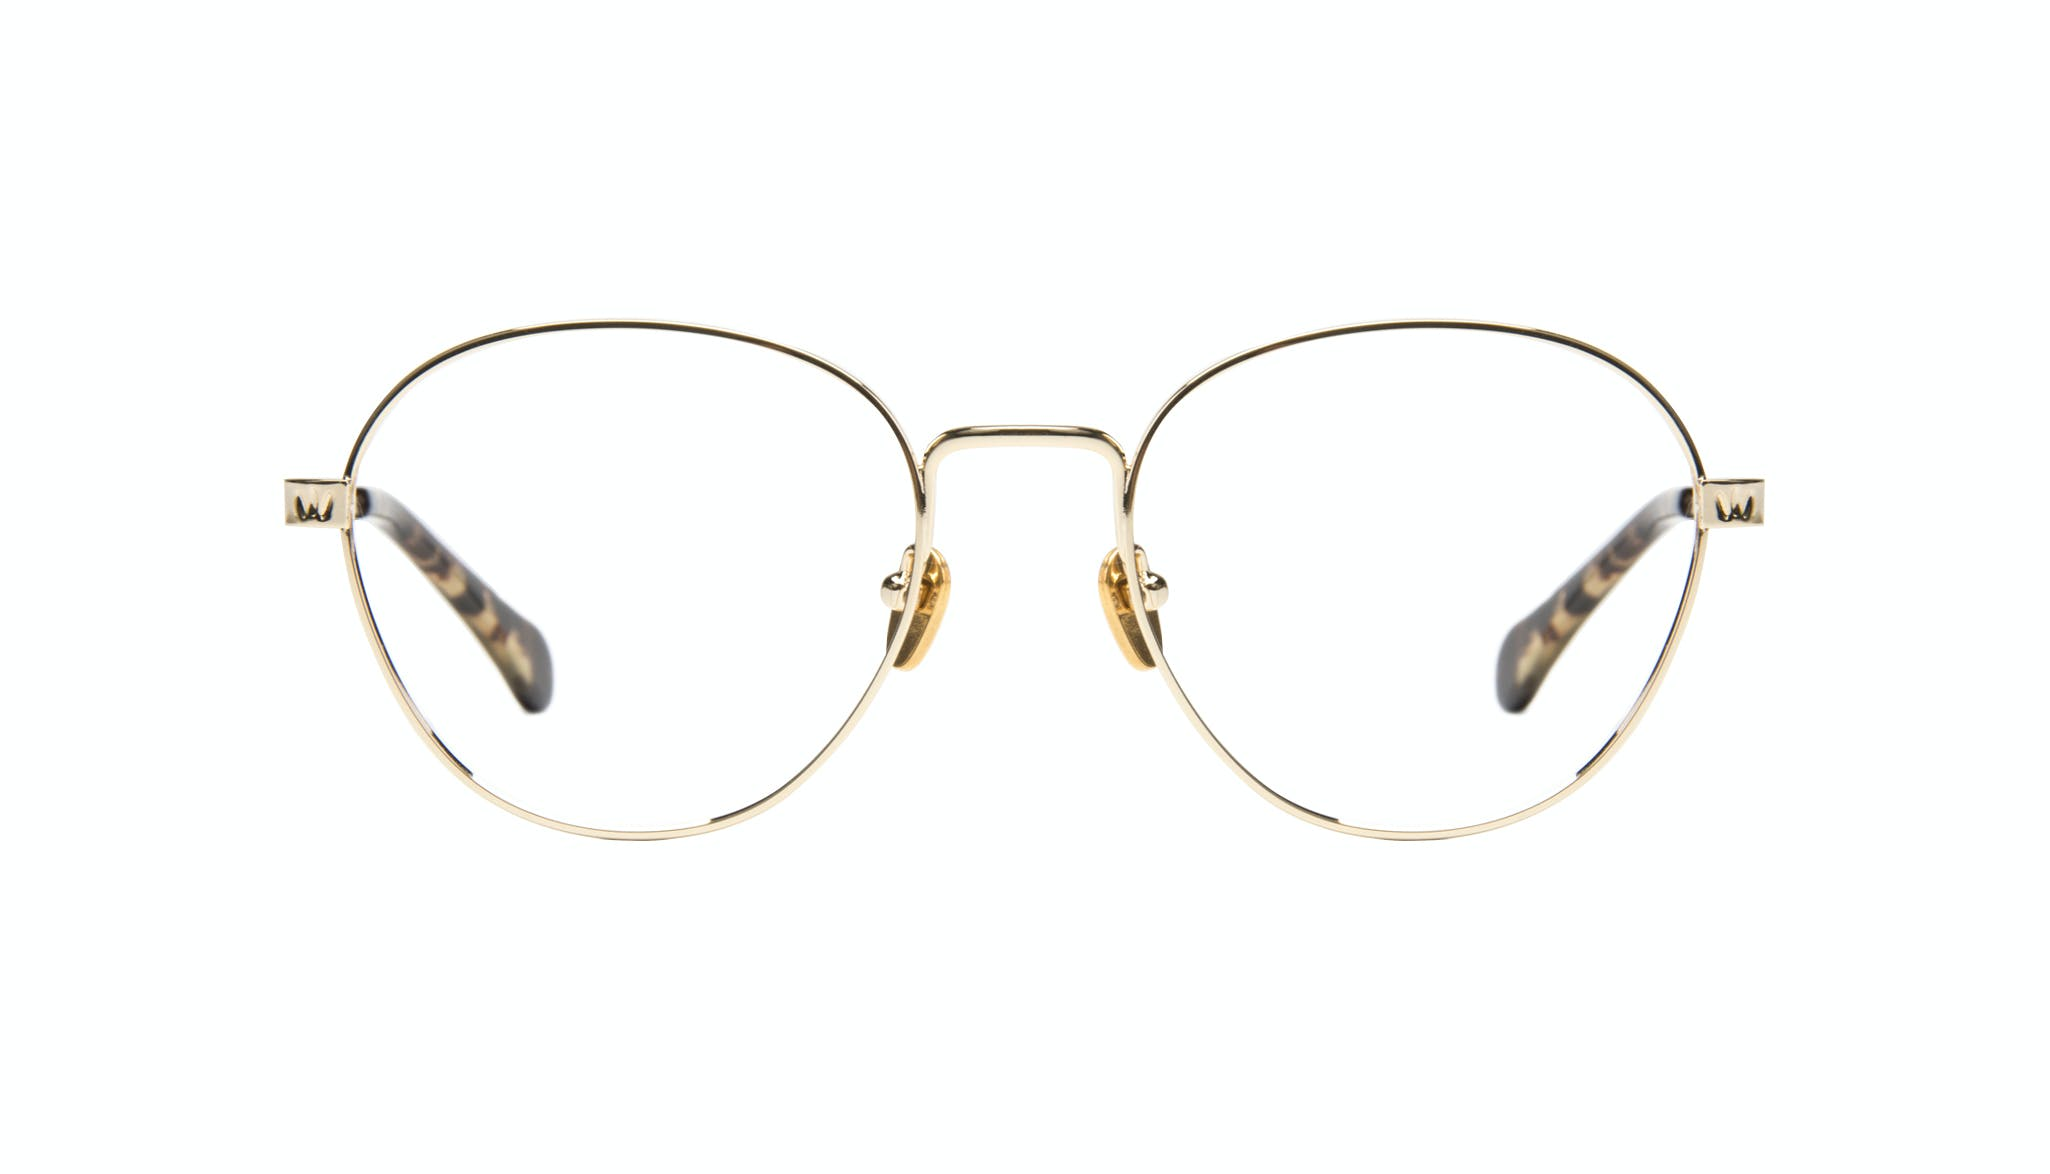 Affordable Fashion Glasses Round Eyeglasses Women Brace gold